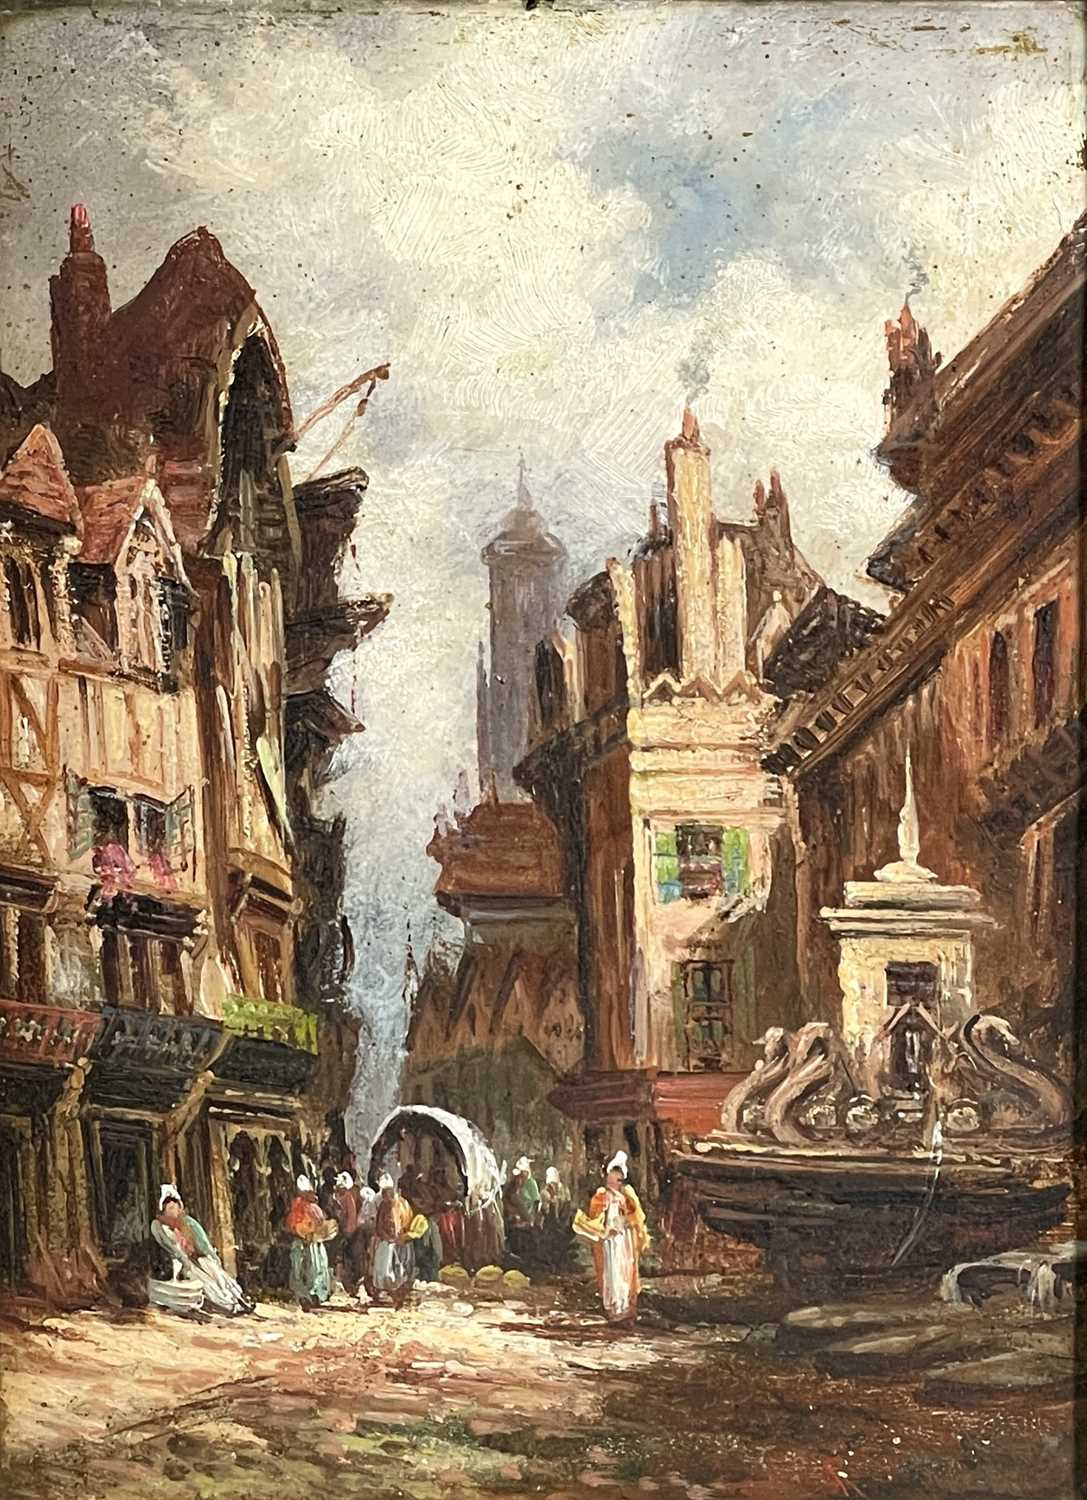 Follower of Henry Thomas SCHAEFER (1854-1915) Town Streets Oil on canvas Indistinctly signed - Image 2 of 7